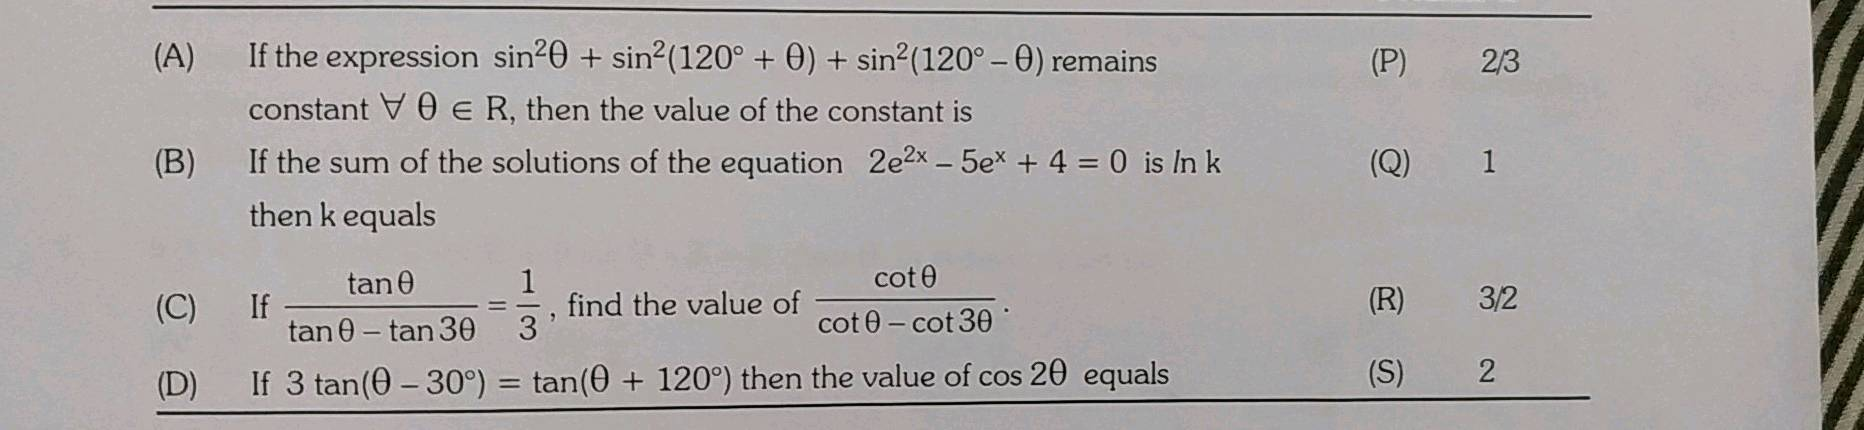 A B Q 1 If The Expression Sin20 Sin 120 0